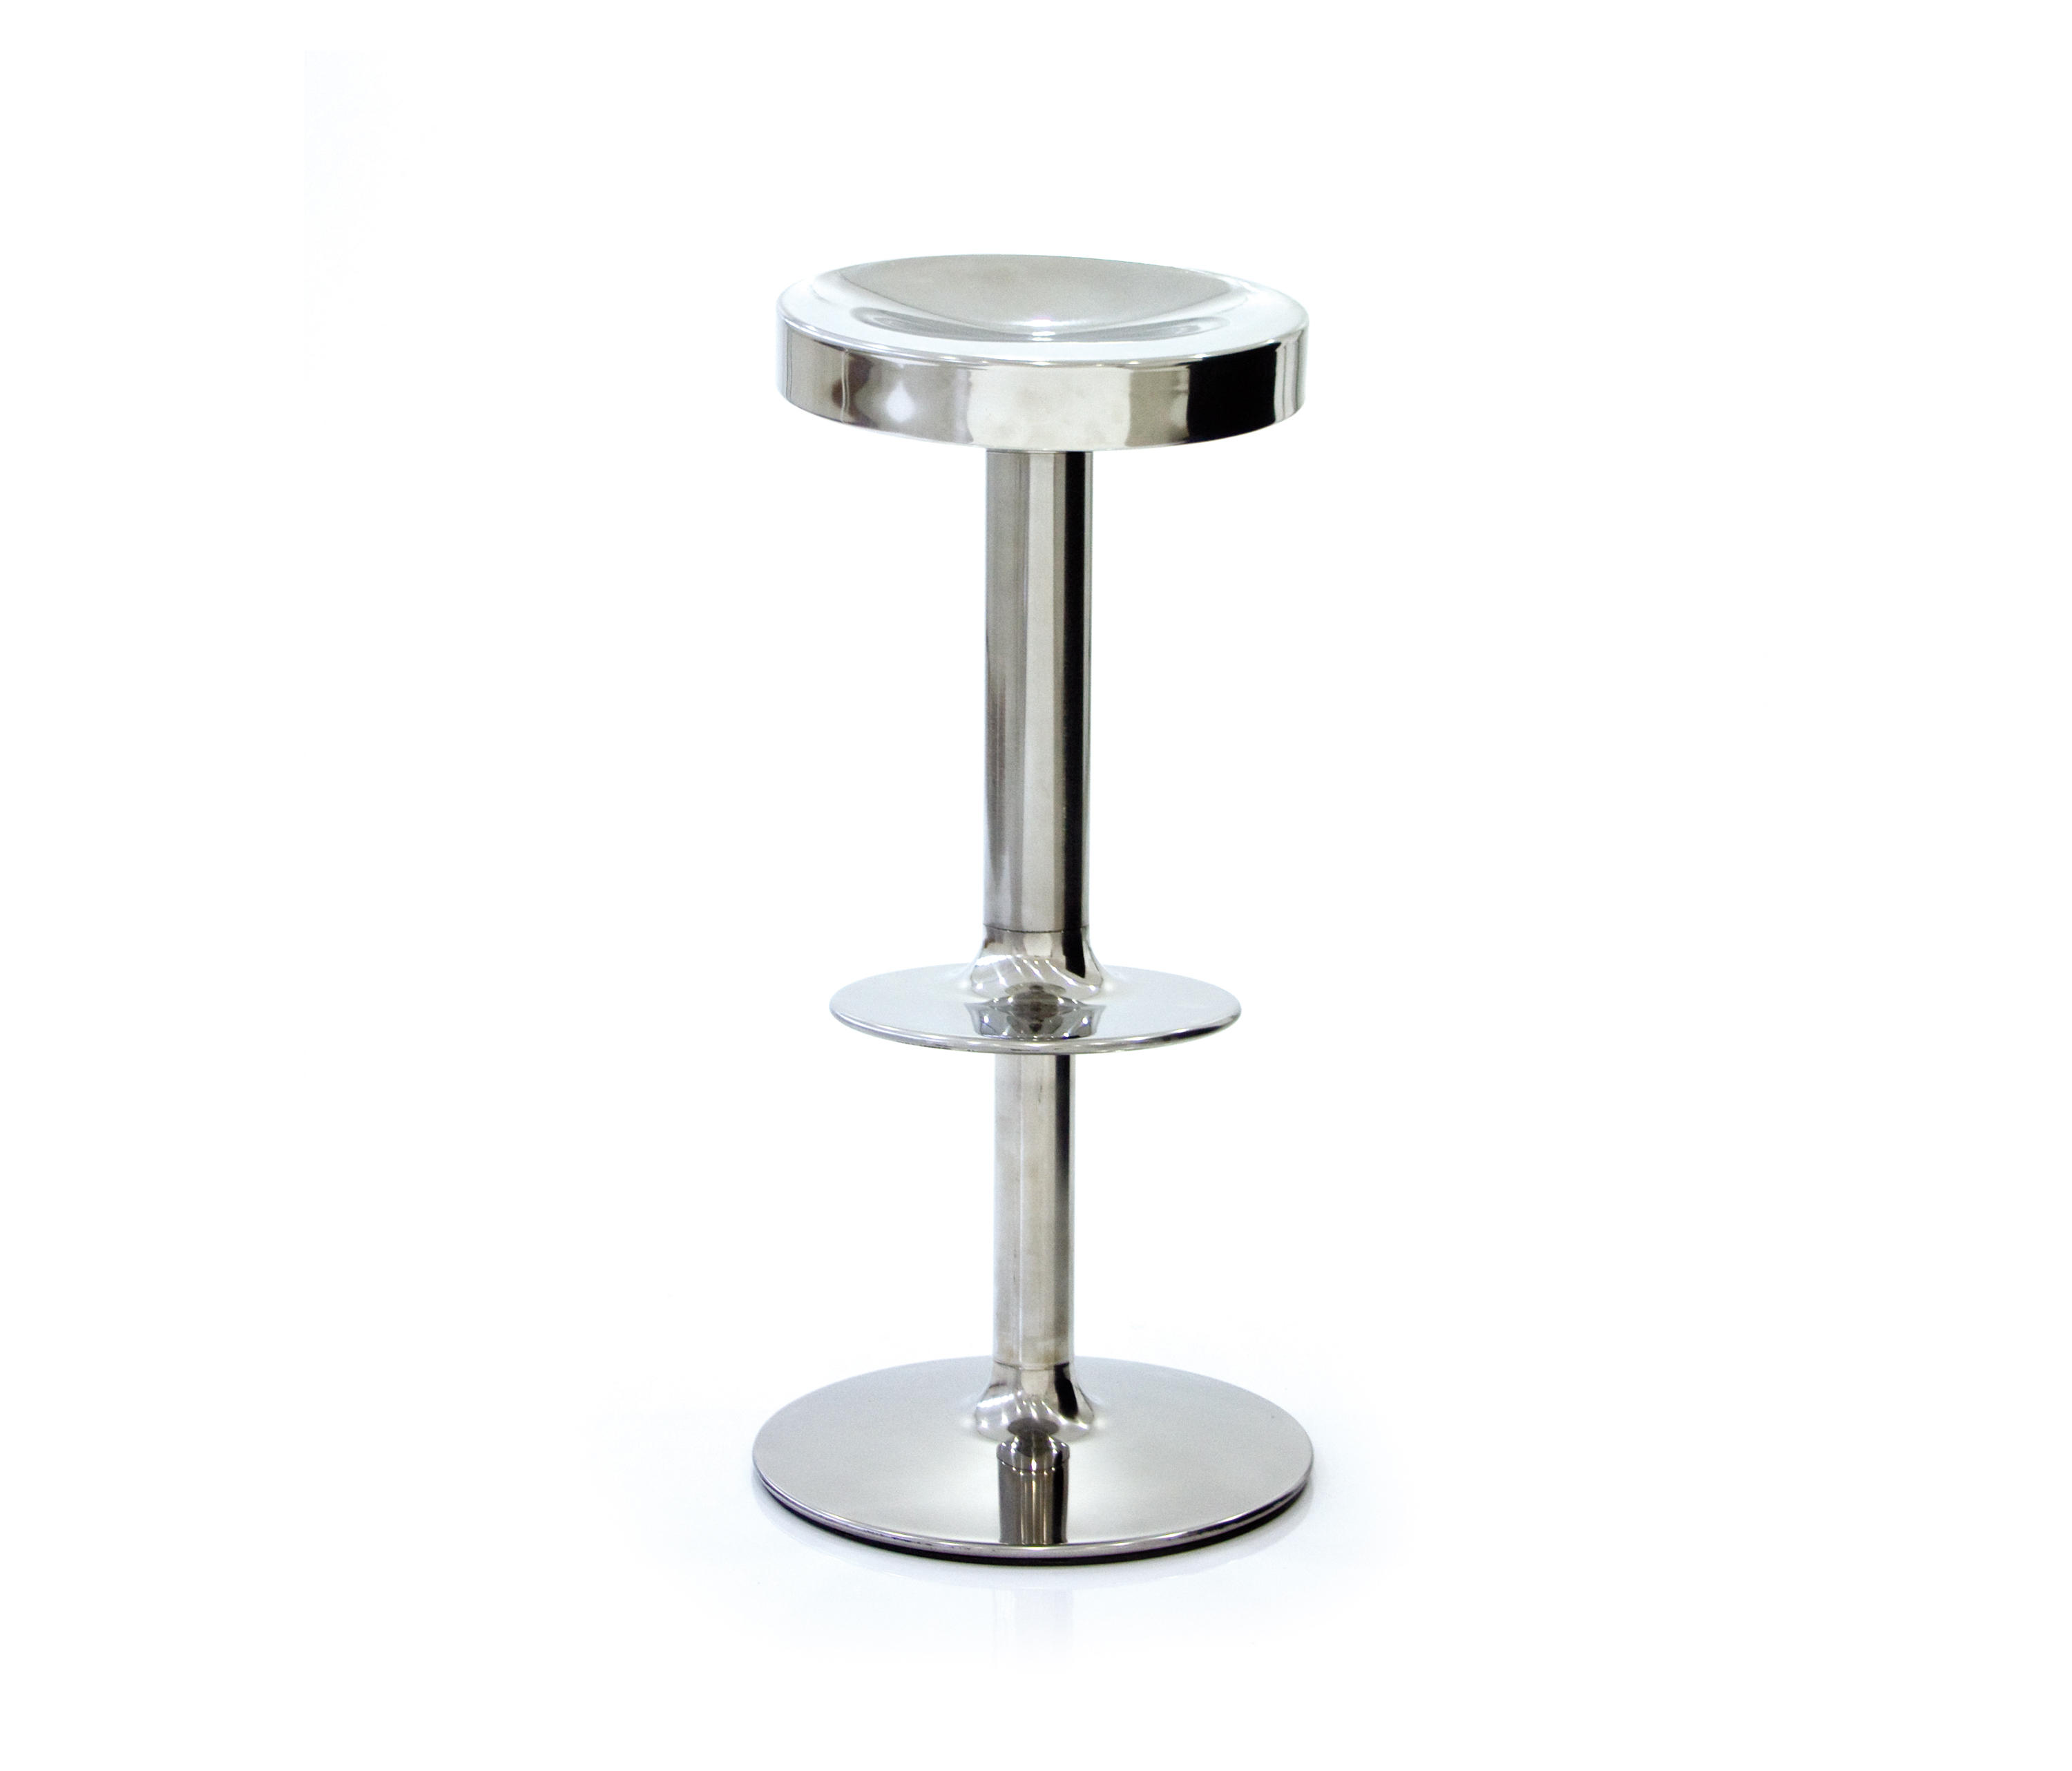 sweet stainless steel stool bar stools from magis architonic. Black Bedroom Furniture Sets. Home Design Ideas